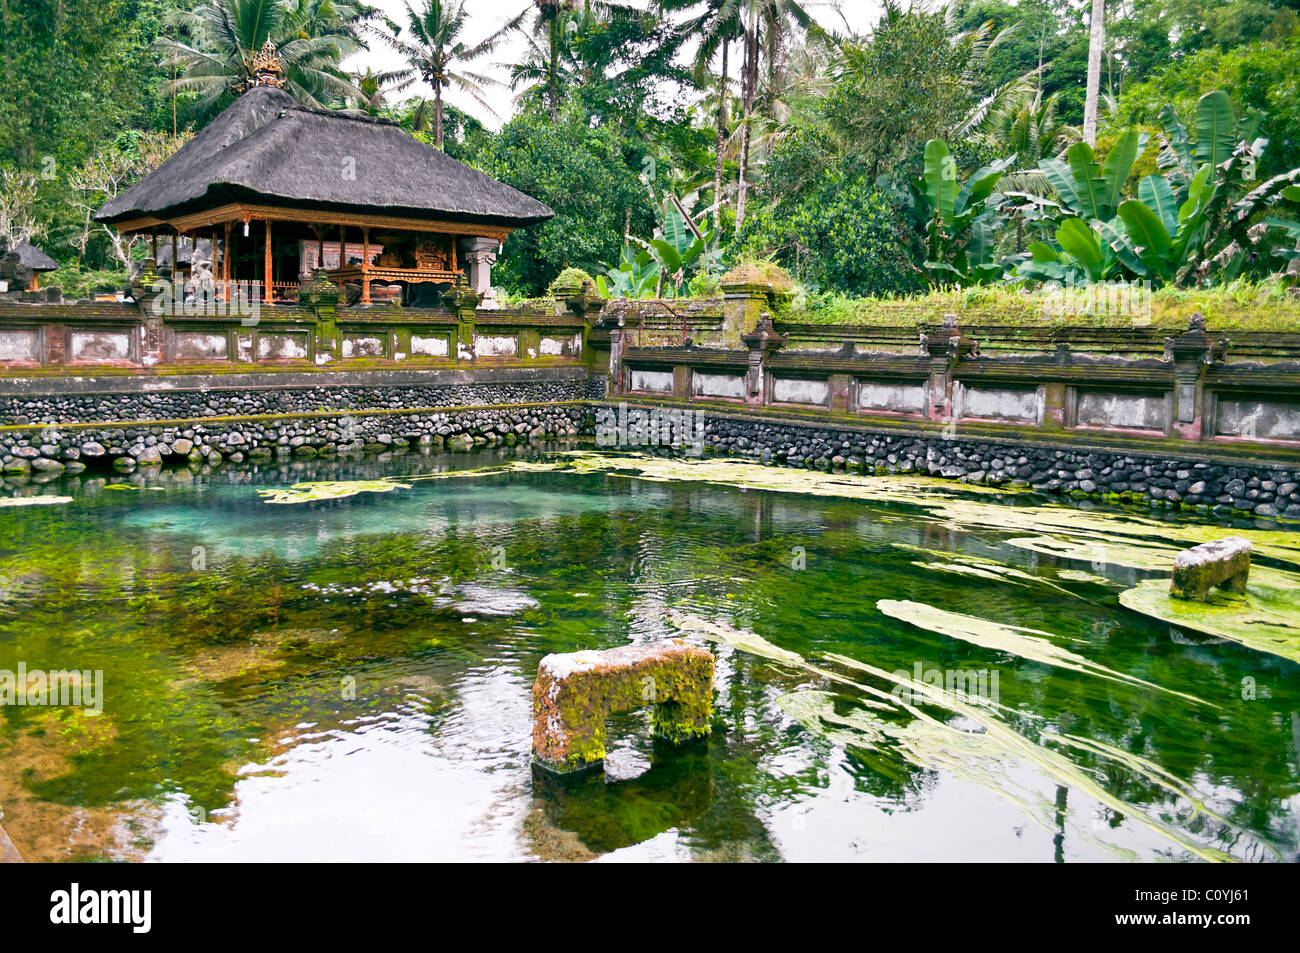 Green Pond in Ubud temple site in Bali Indonesia - Stock Image